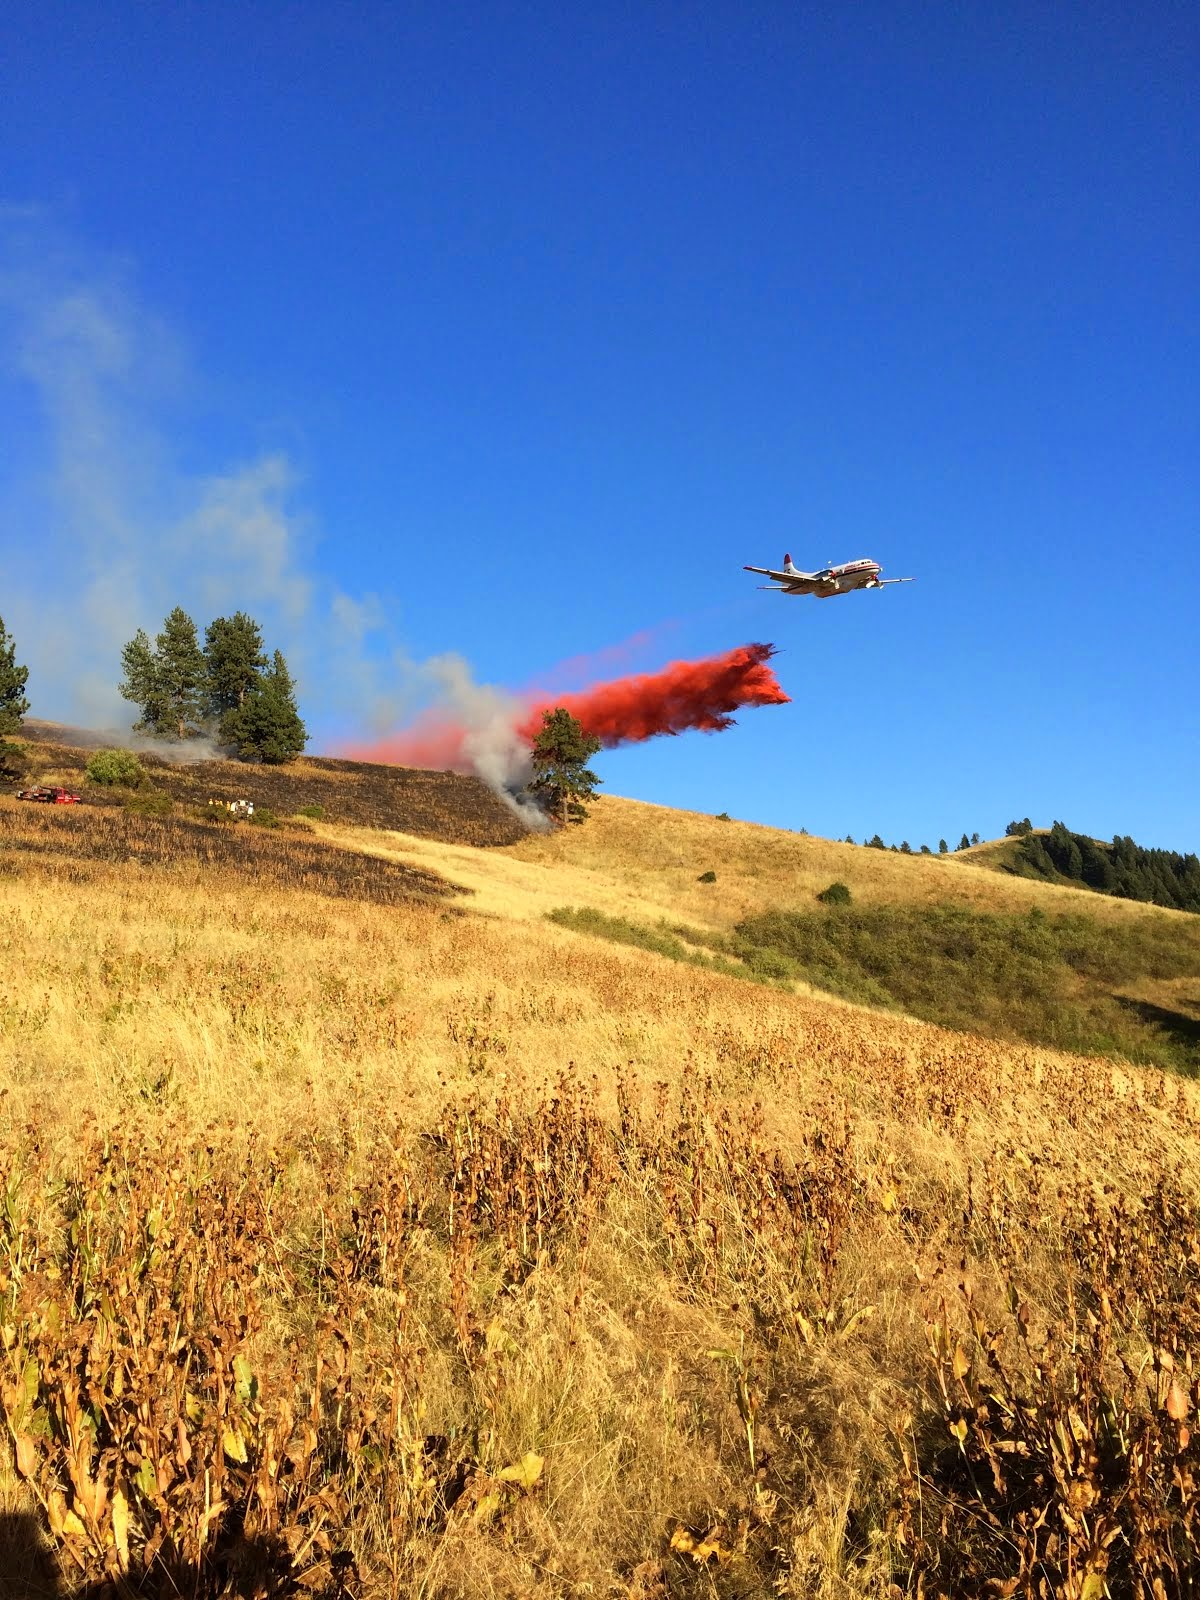 Stumbough Ridge Fire